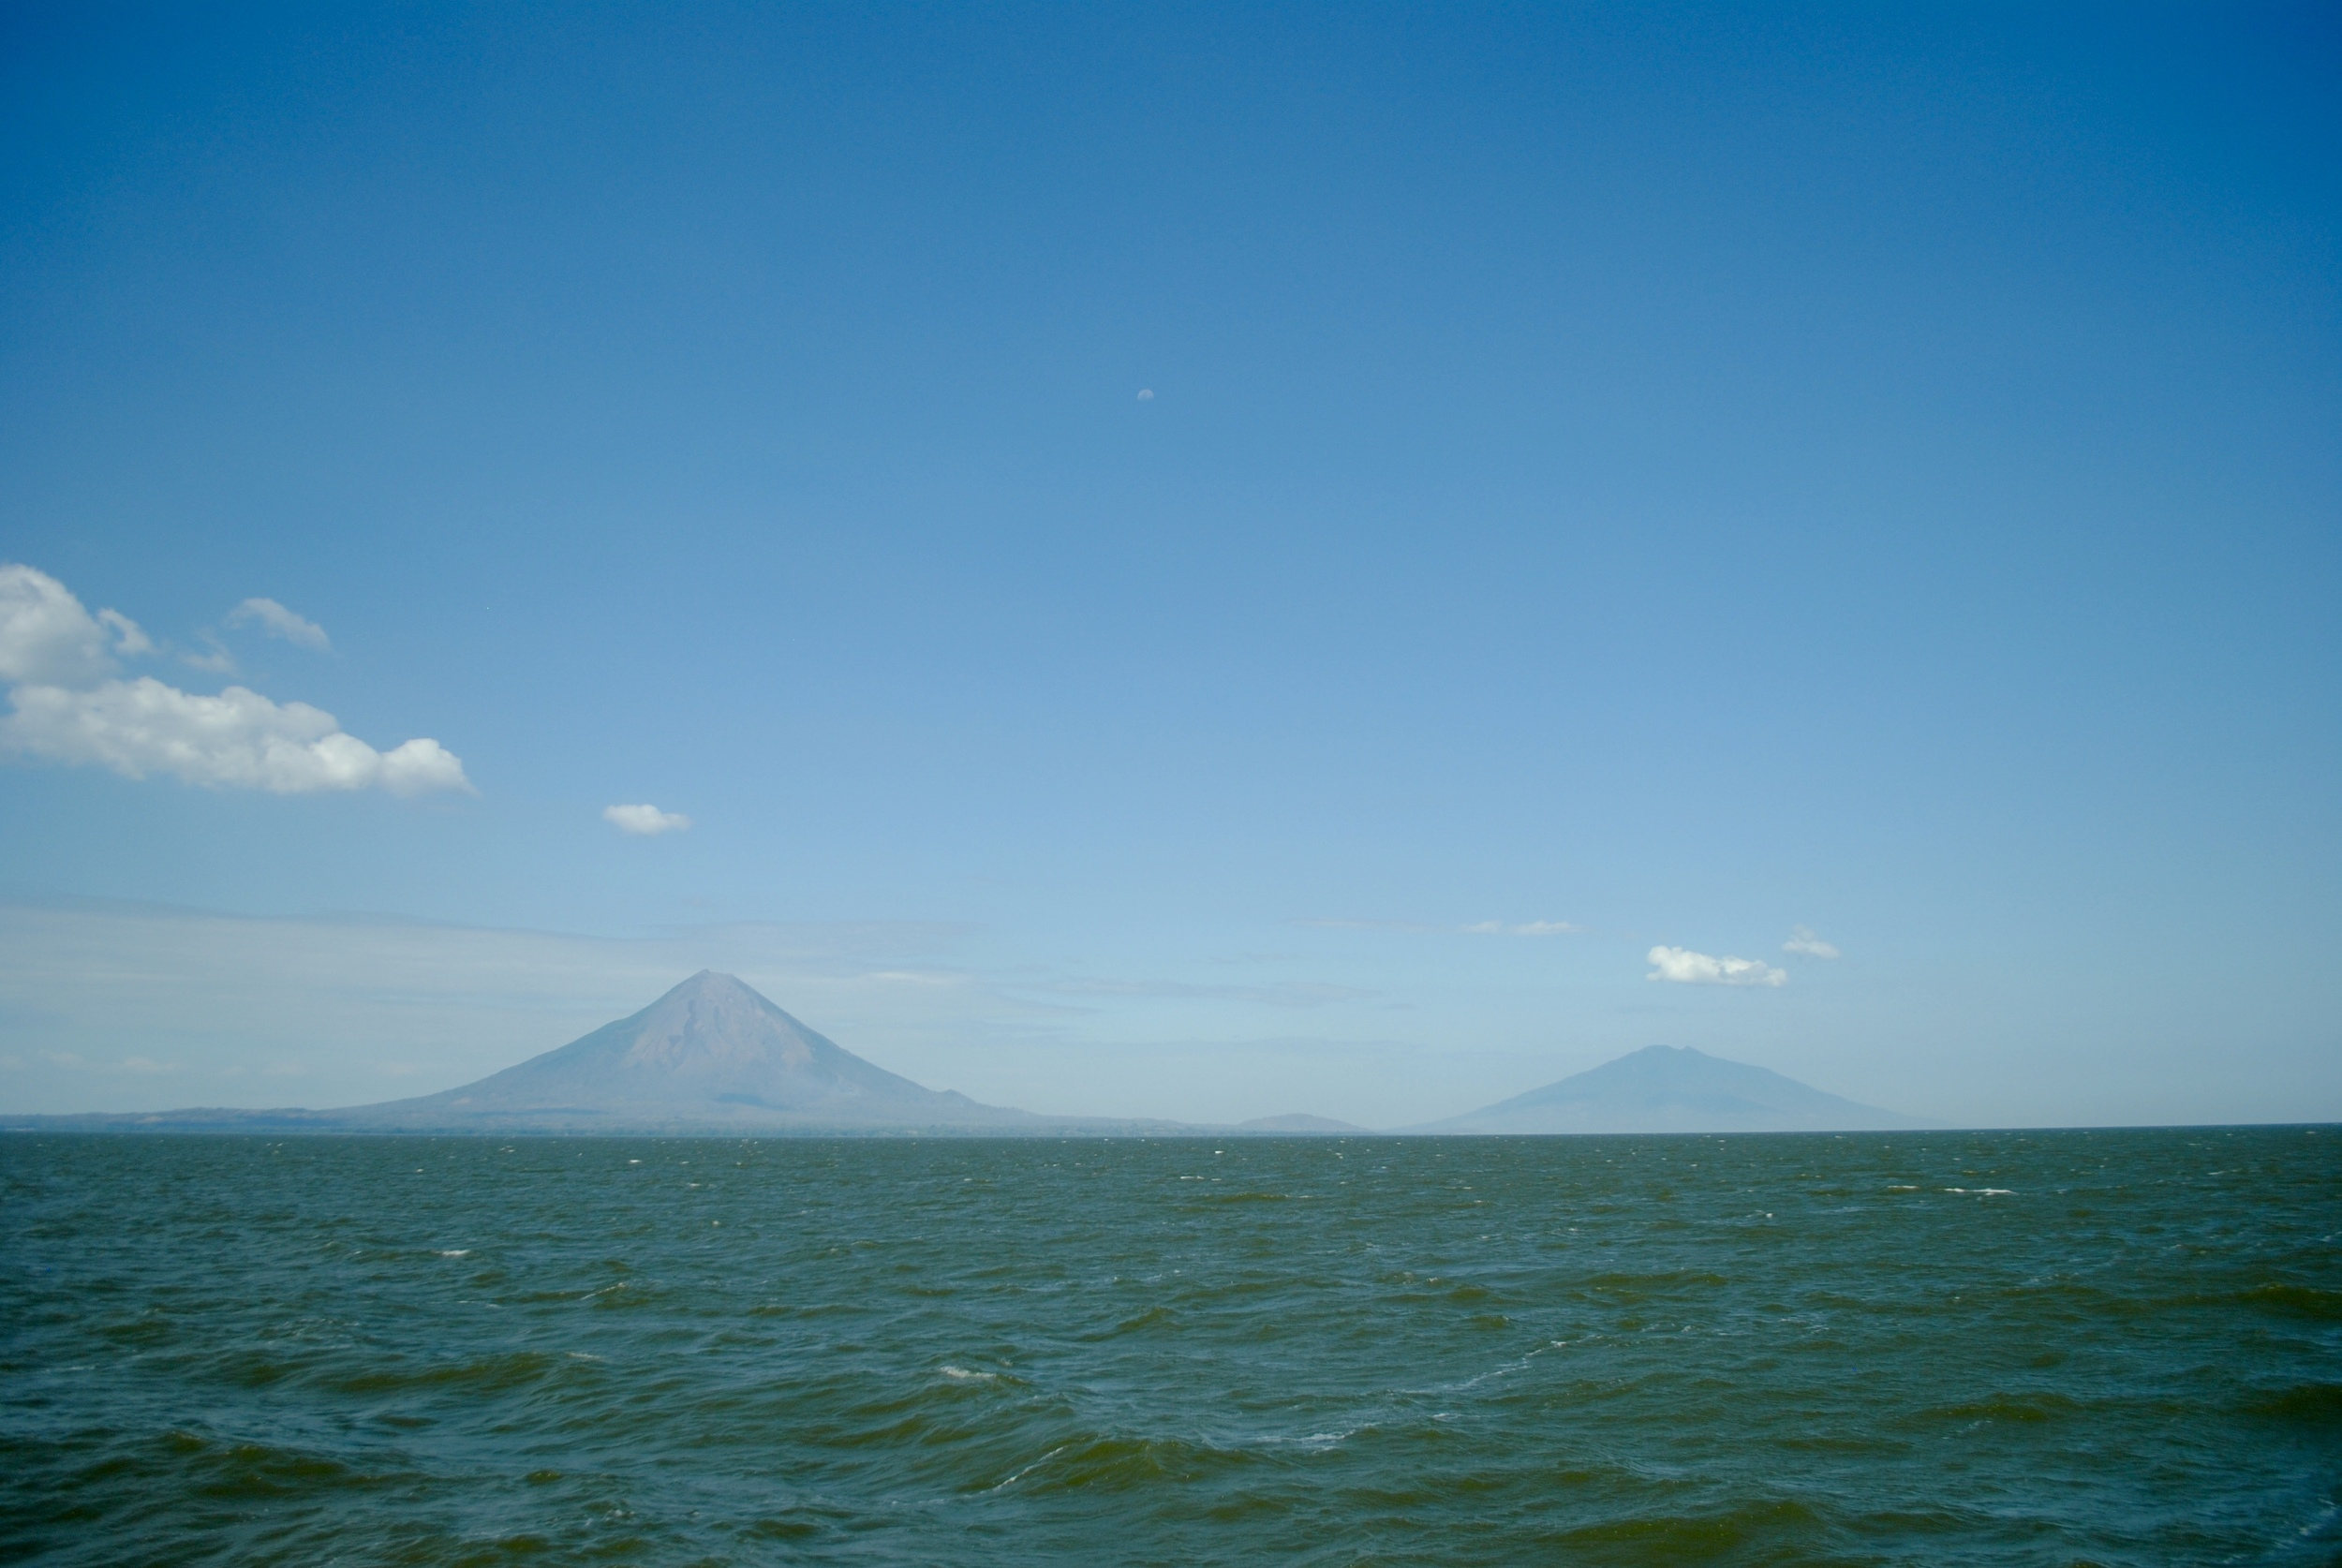 On the ferry heading to Isla de Ometepe - volcan Concepcion and Madares in the distance